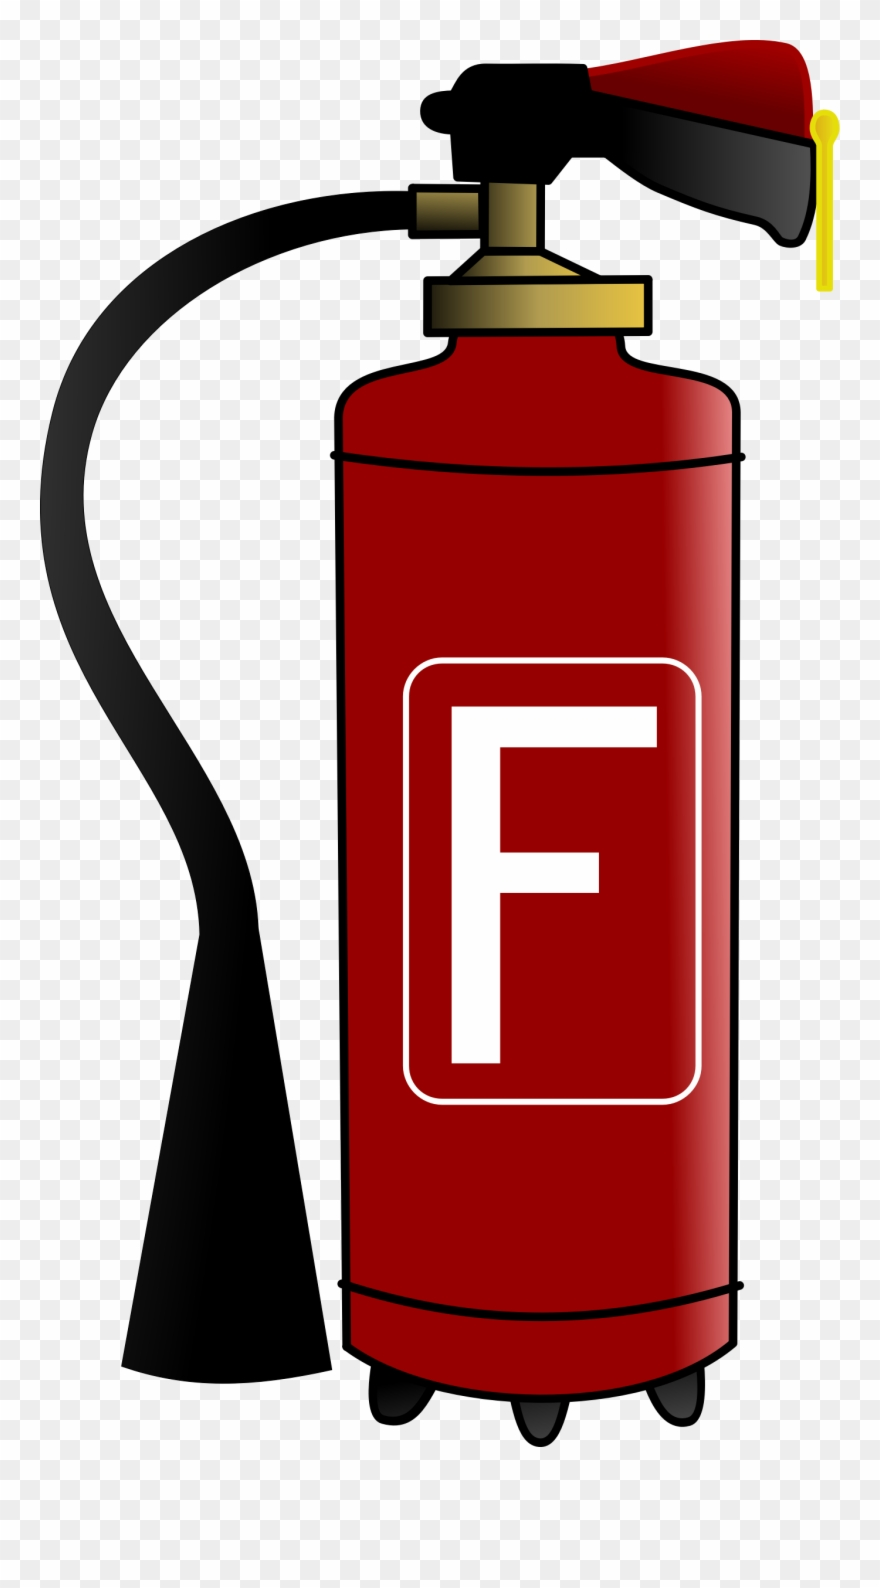 Clipart Black And White 911 Clipart Fire Emergency.